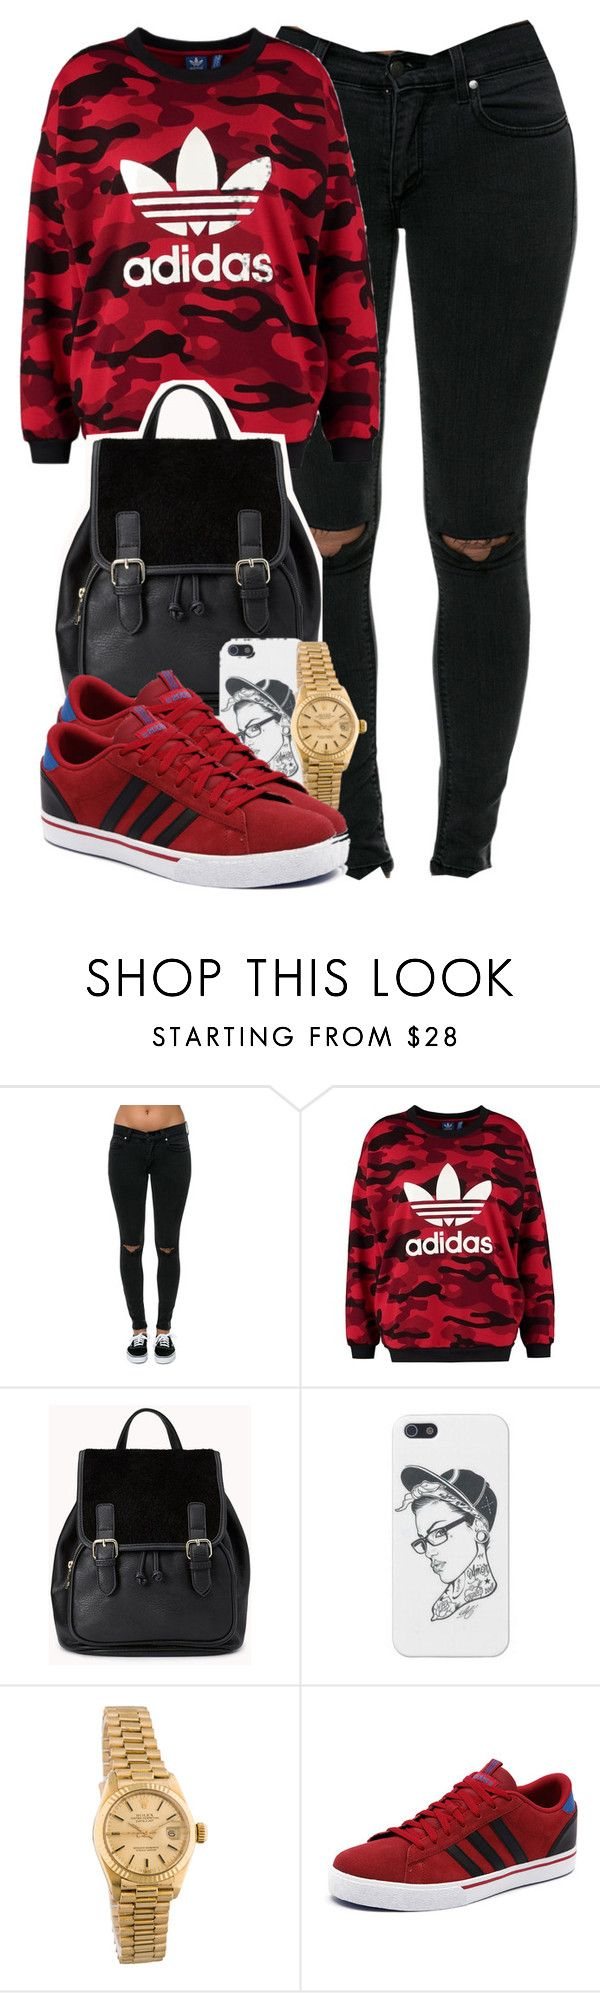 Adidas. by cheerstostyle on Polyvore featuring adidas Originals, Pistola, Forever 21, Rolex and adidas NEO